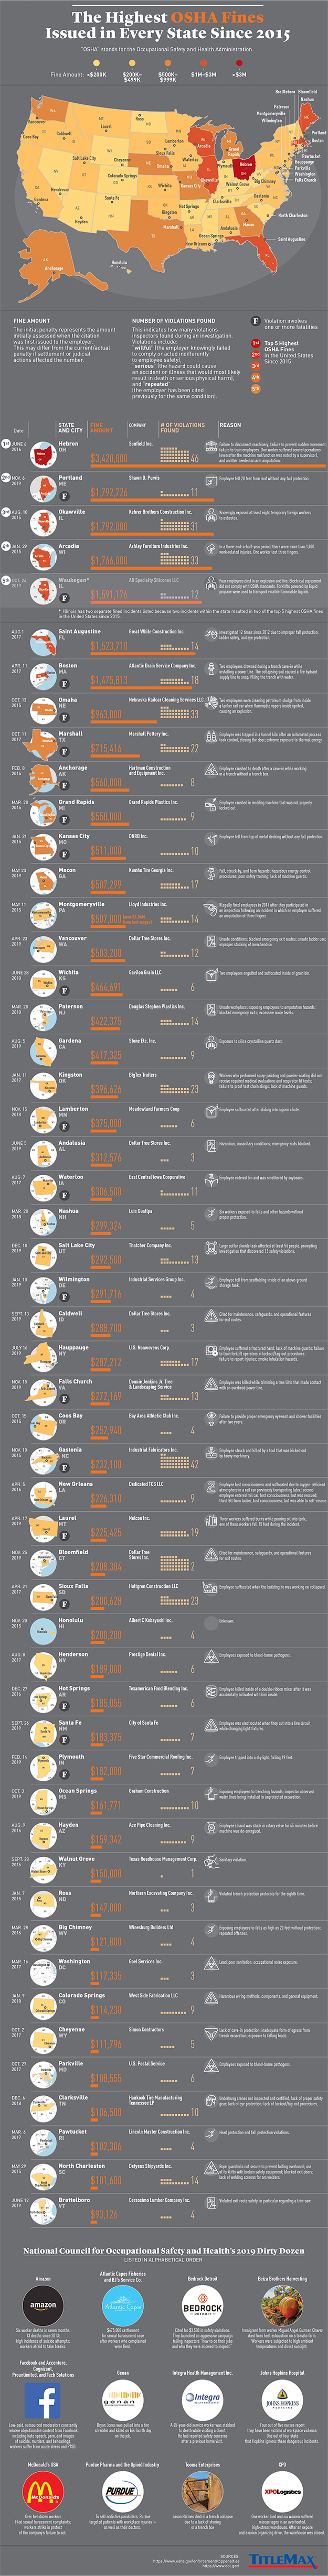 Infographic for The Highest OSHA Fines Issued in Every State Since 2015